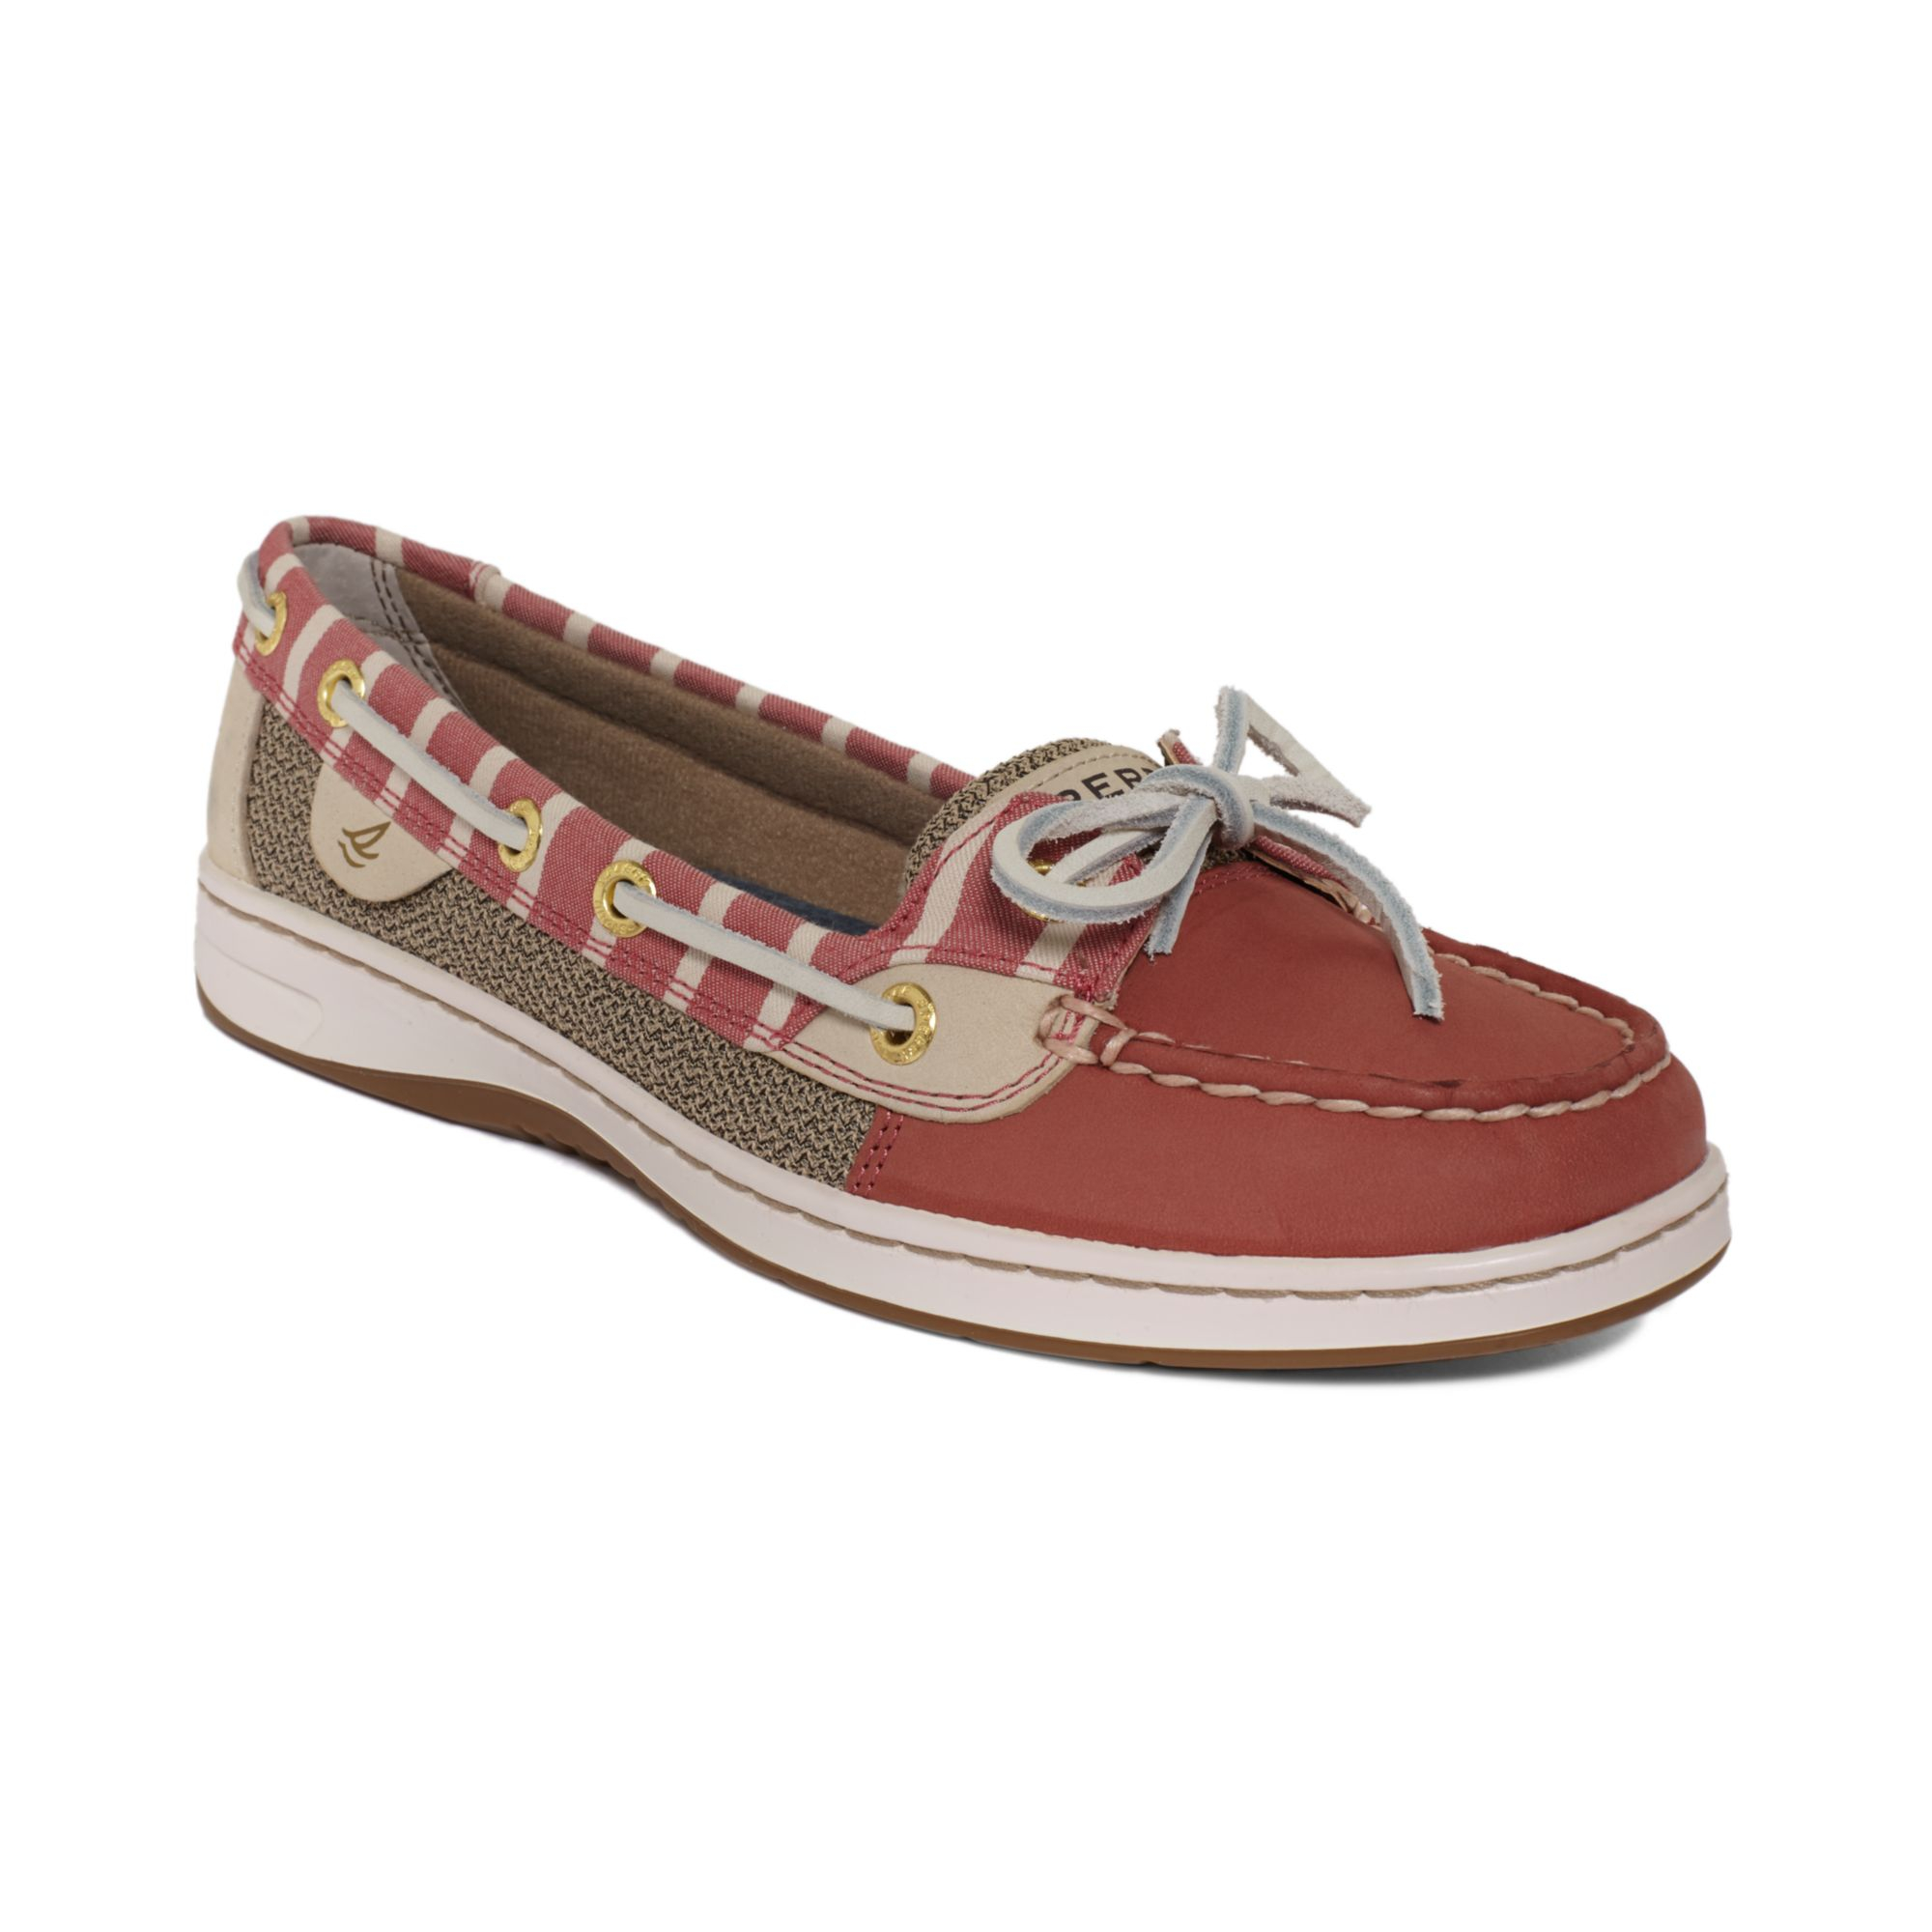 Comfortable Shoes for Women   Belk - Everyday Free Shipping